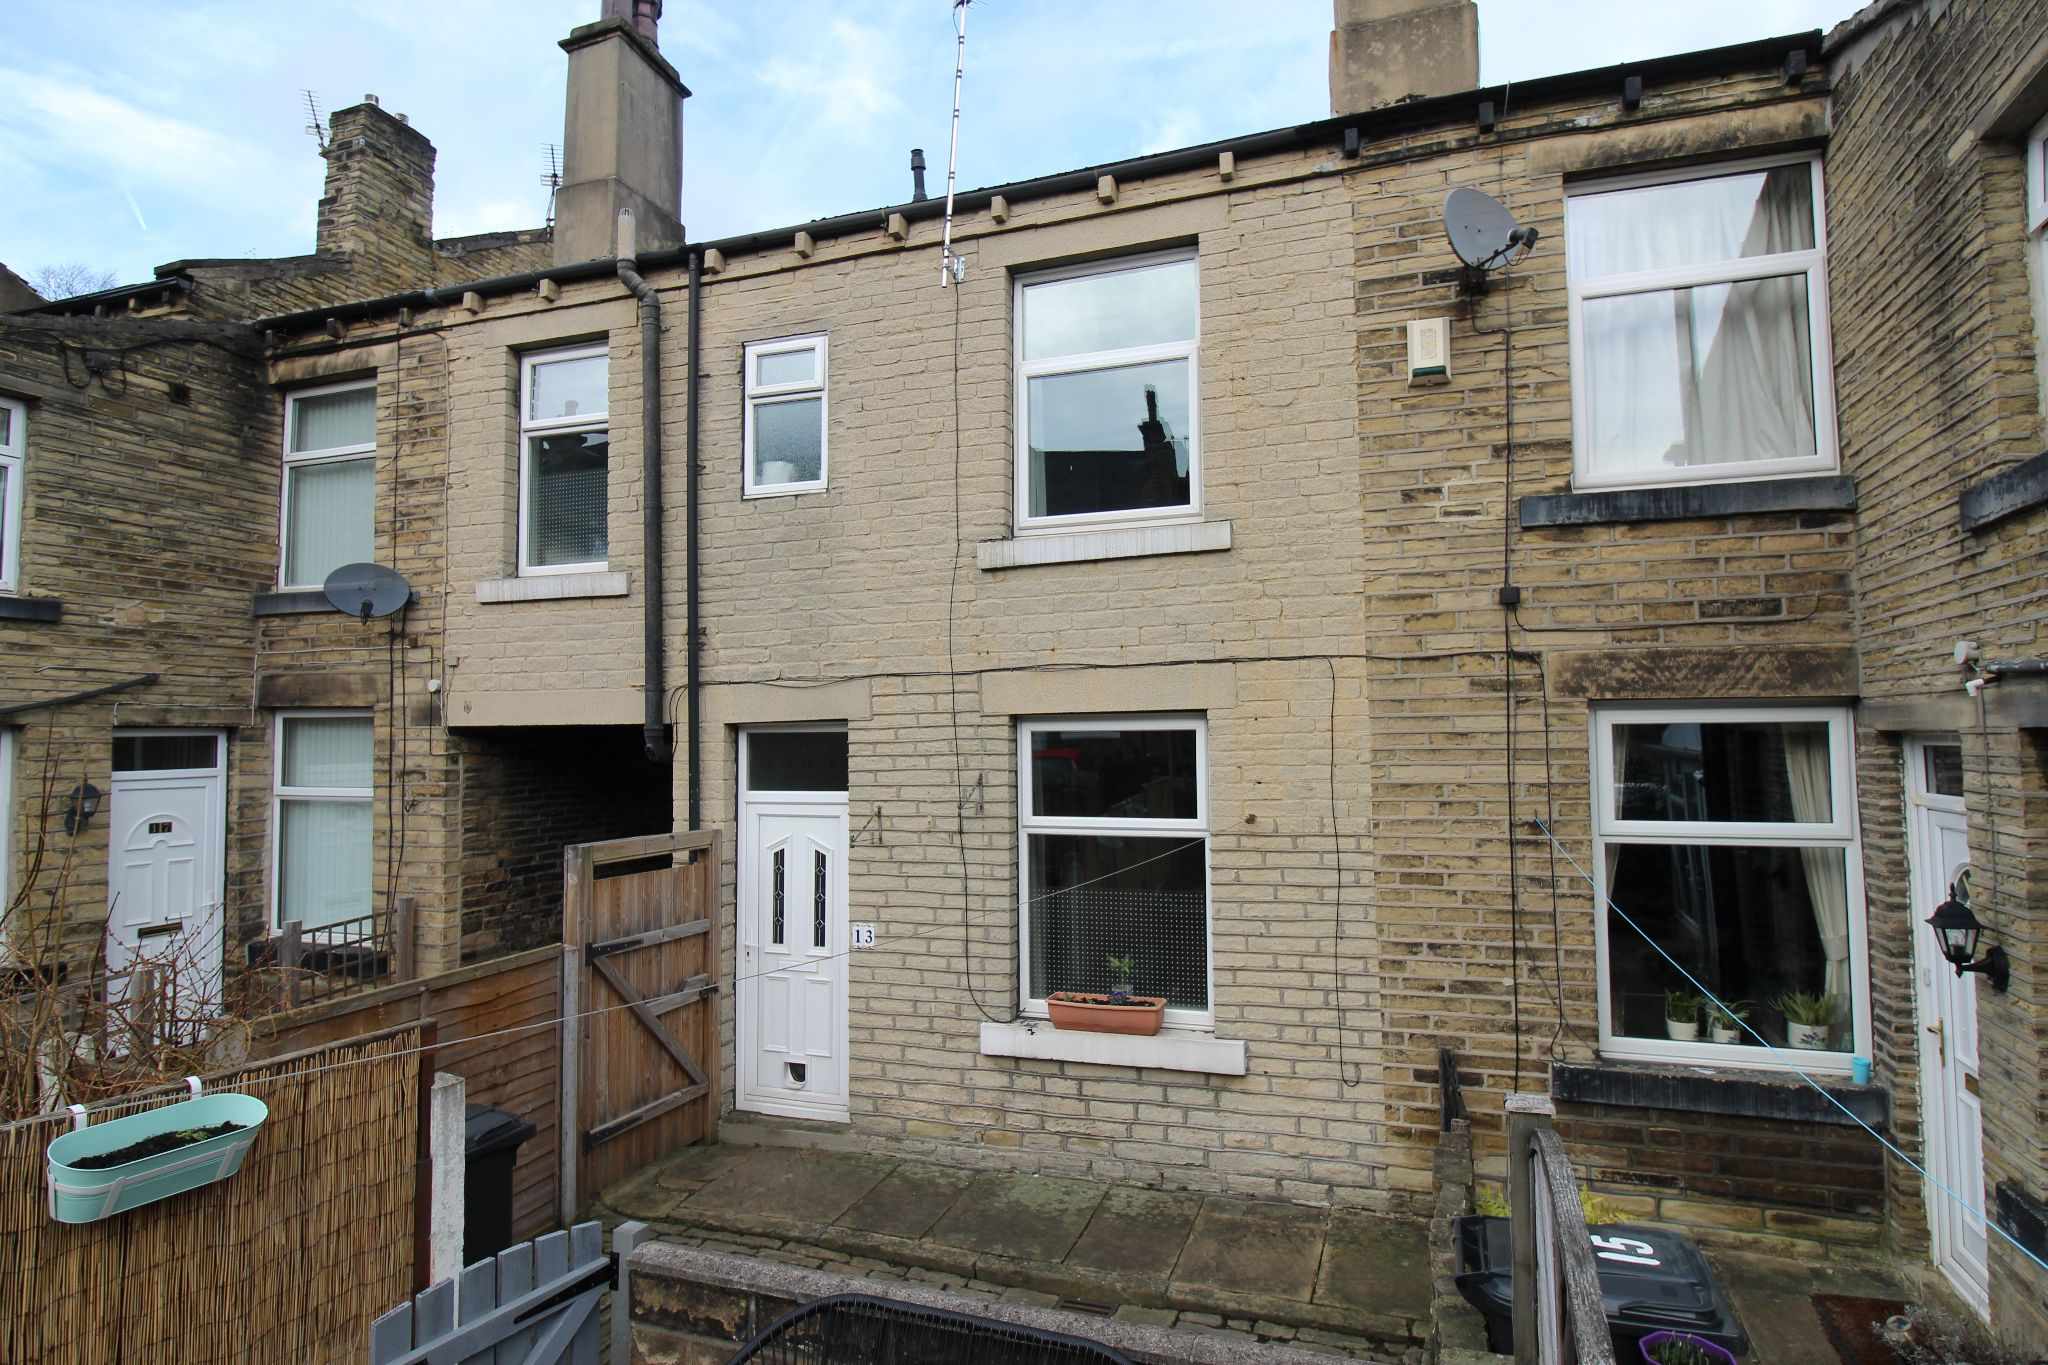 2 bedroom mid terraced house SSTC in Brighouse - Front aspect